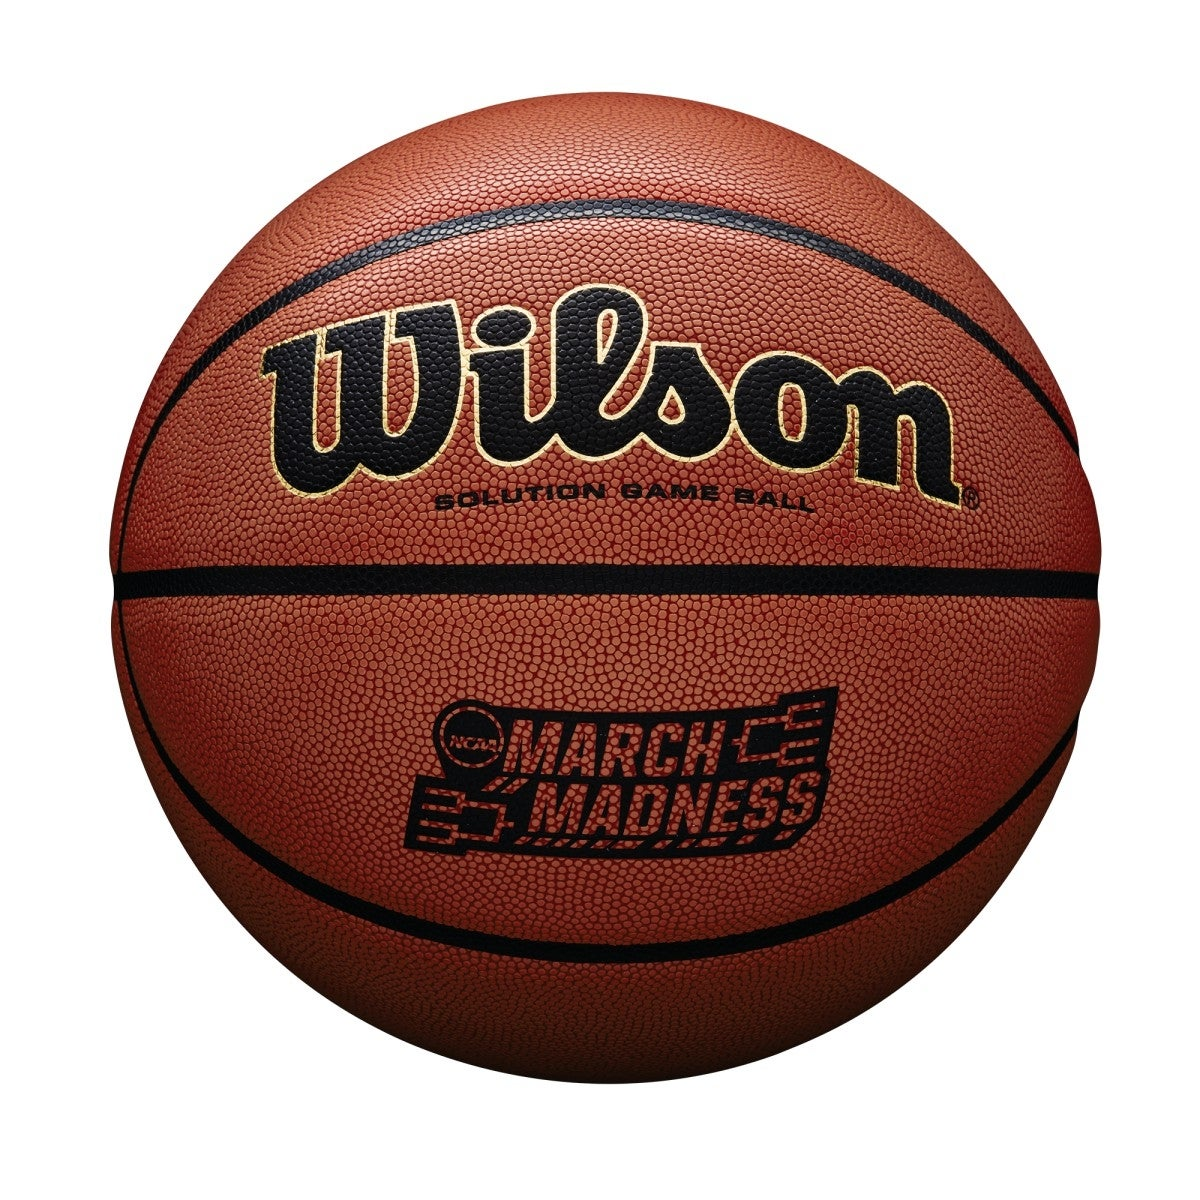 March Madness Game Ball